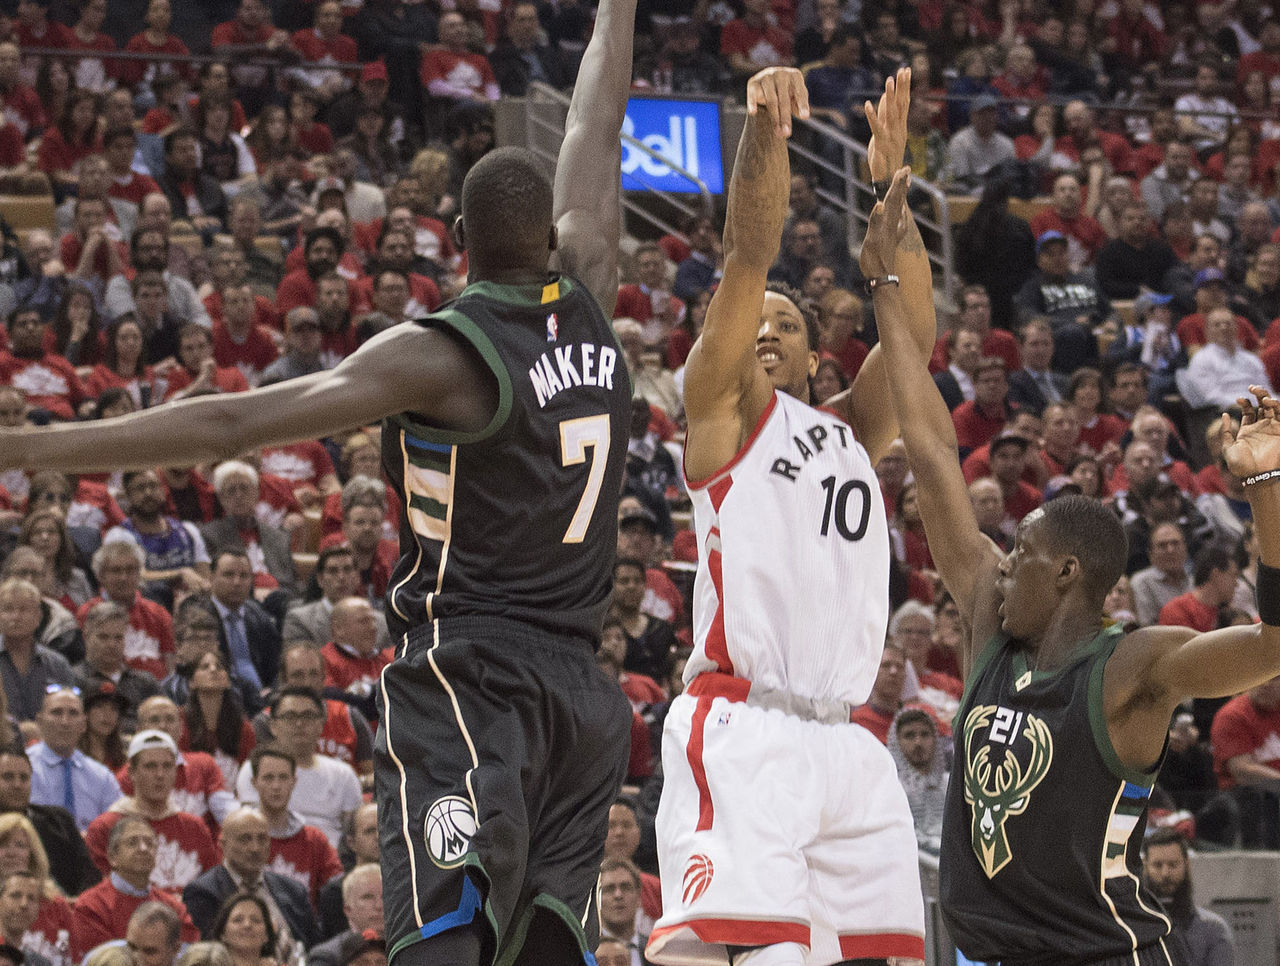 Cropped 2017 04 25t020004z 2115411207 nocid rtrmadp 3 nba playoffs milwaukee bucks at toronto raptors